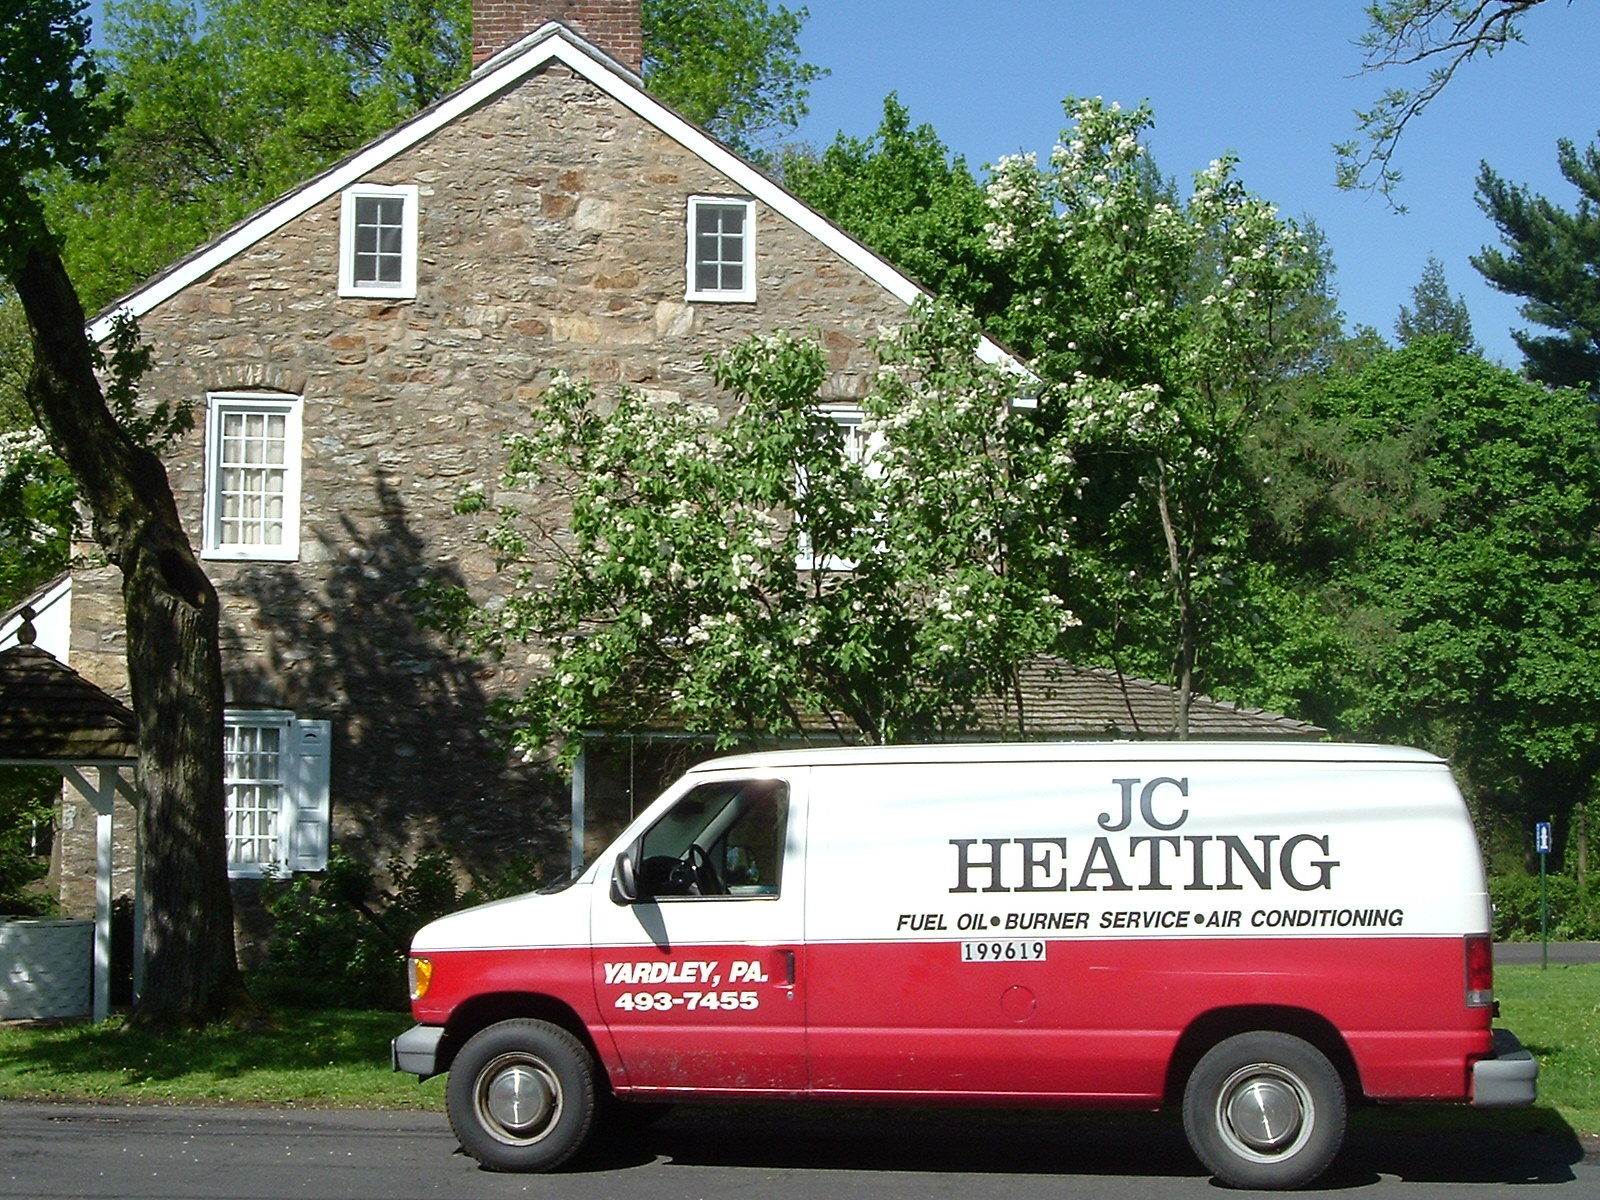 JC Heating & Cooling will meet your heat pump & air conditioning needs in Langhorne PA